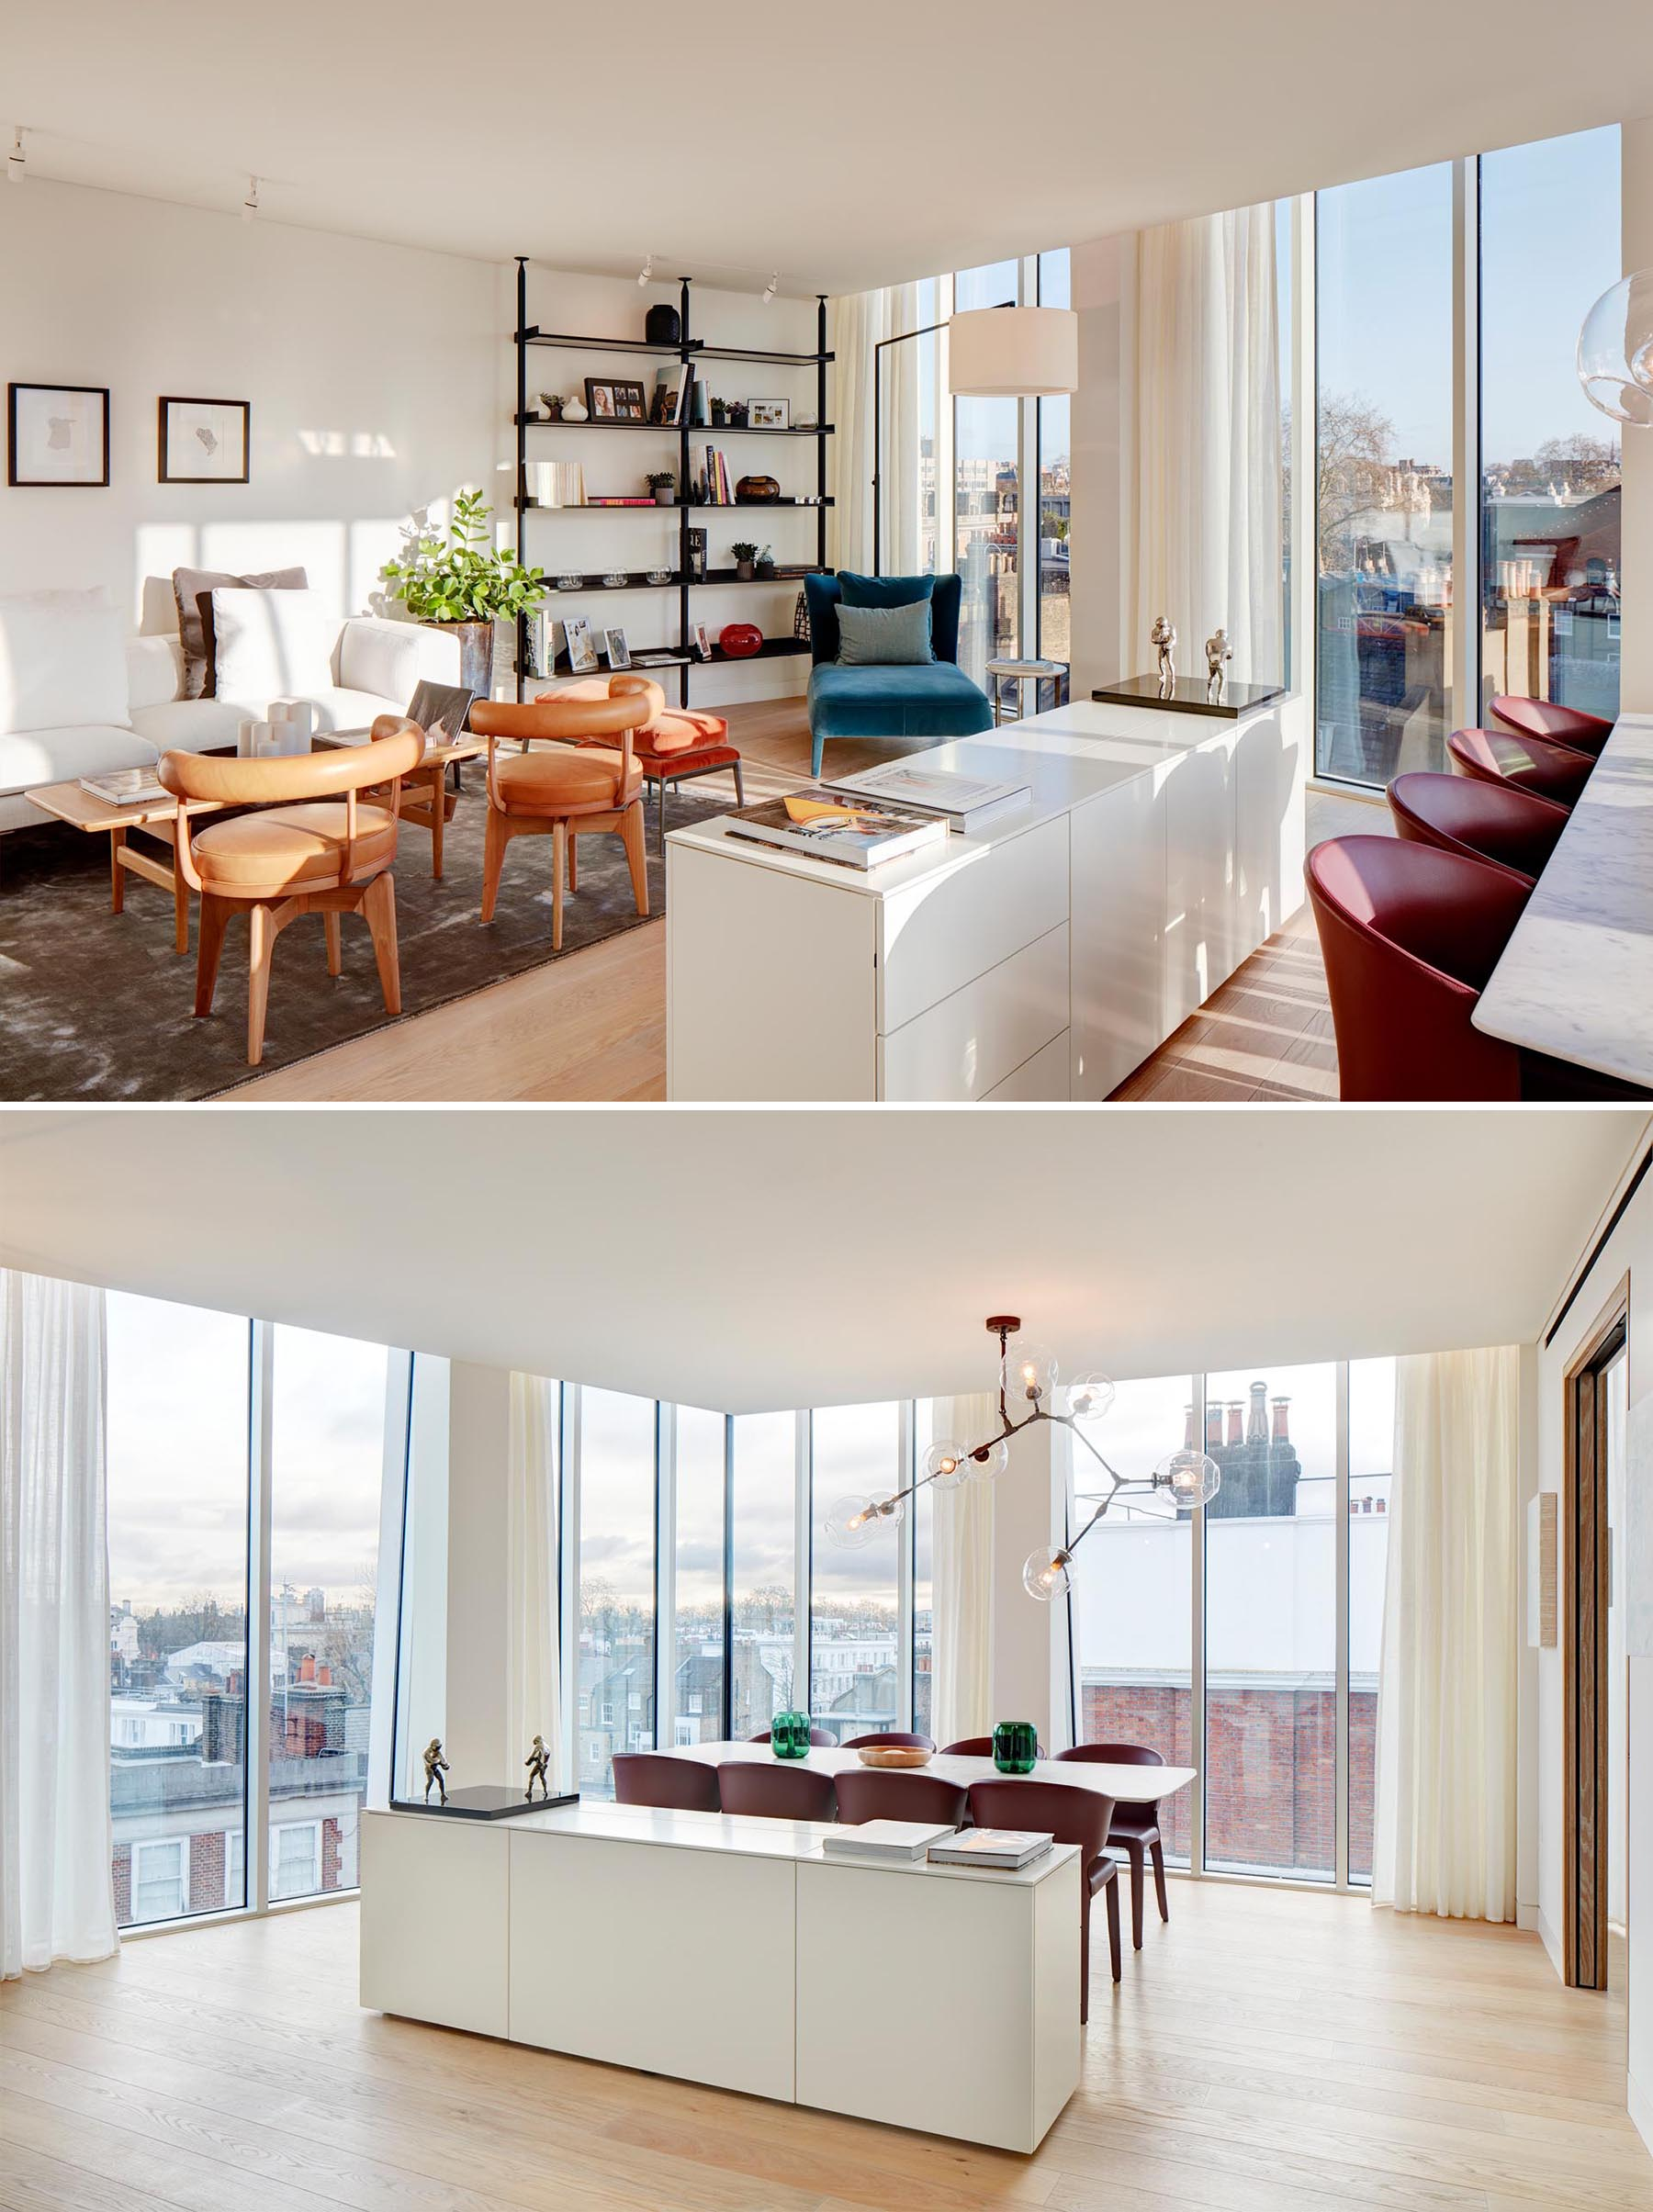 An apartment with the living room and dining room sharing the same open space, while a sideboard separates the two areas. The floor-to-ceiling windows flood the interior with ample natural light.